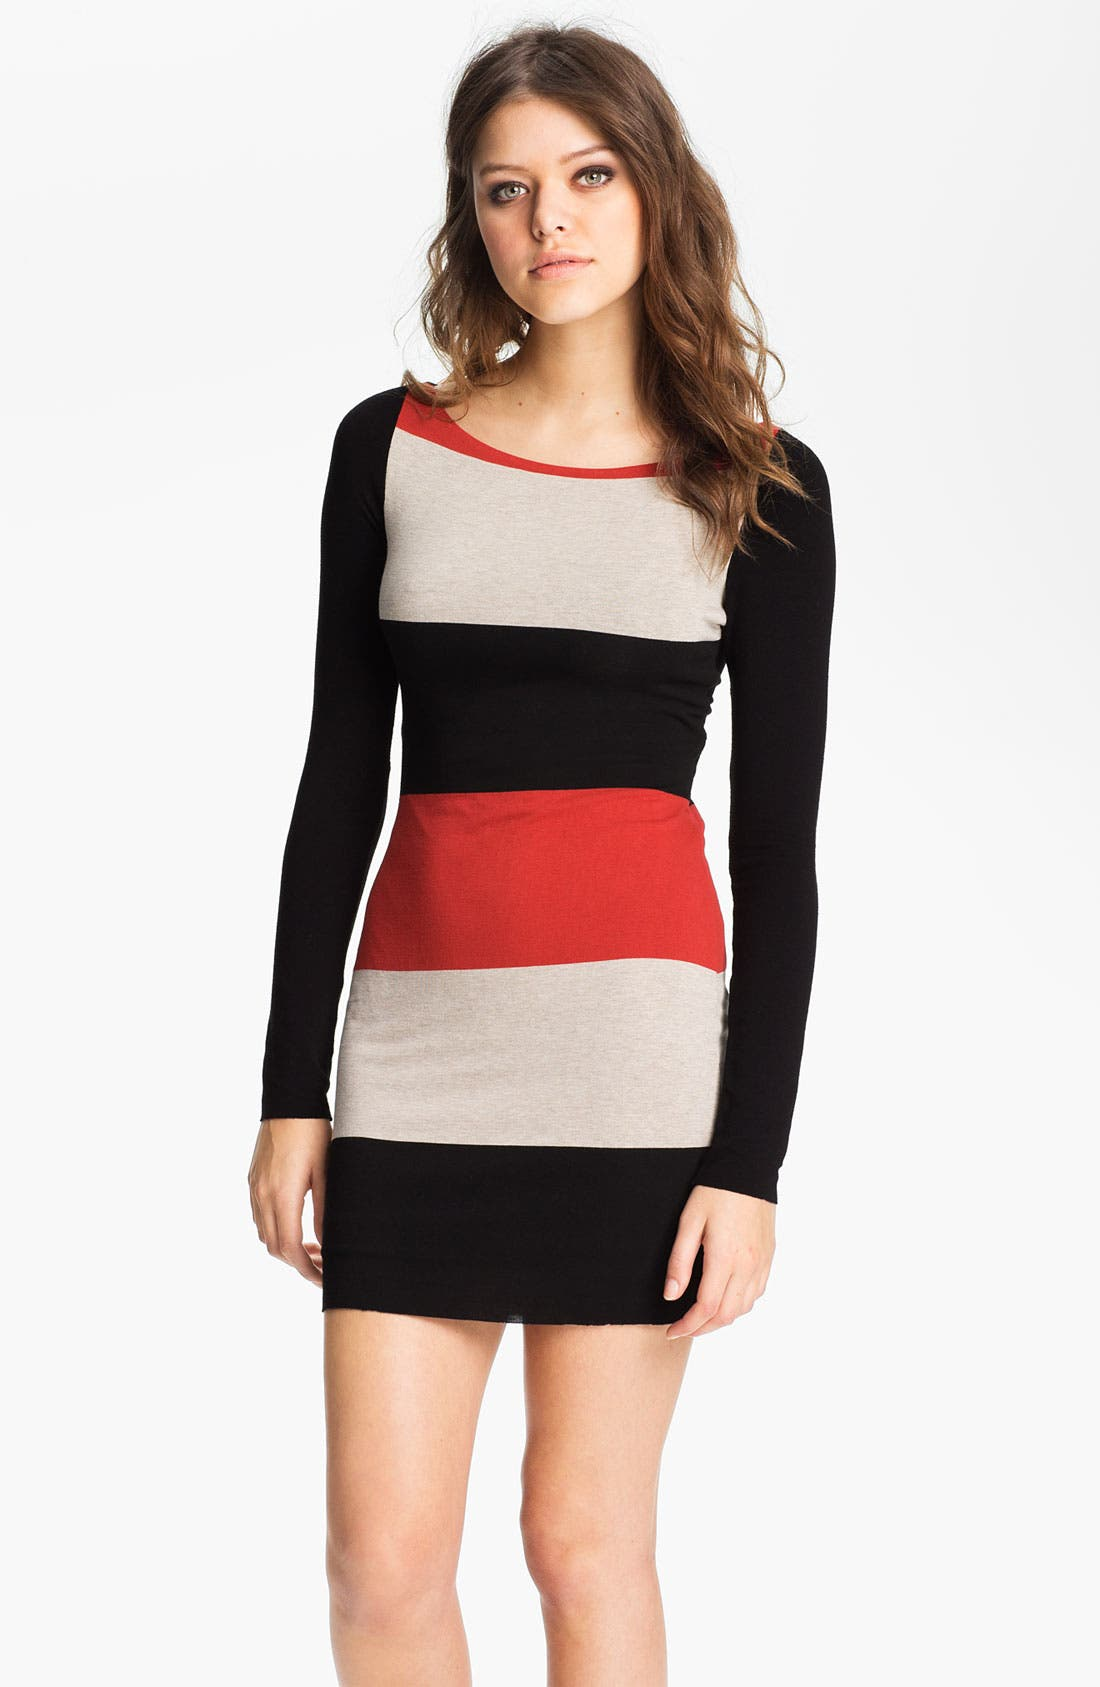 Alternate Image 1 Selected - B44 Dressed by Bailey 44 Colorblock Cross Back Jersey Dress